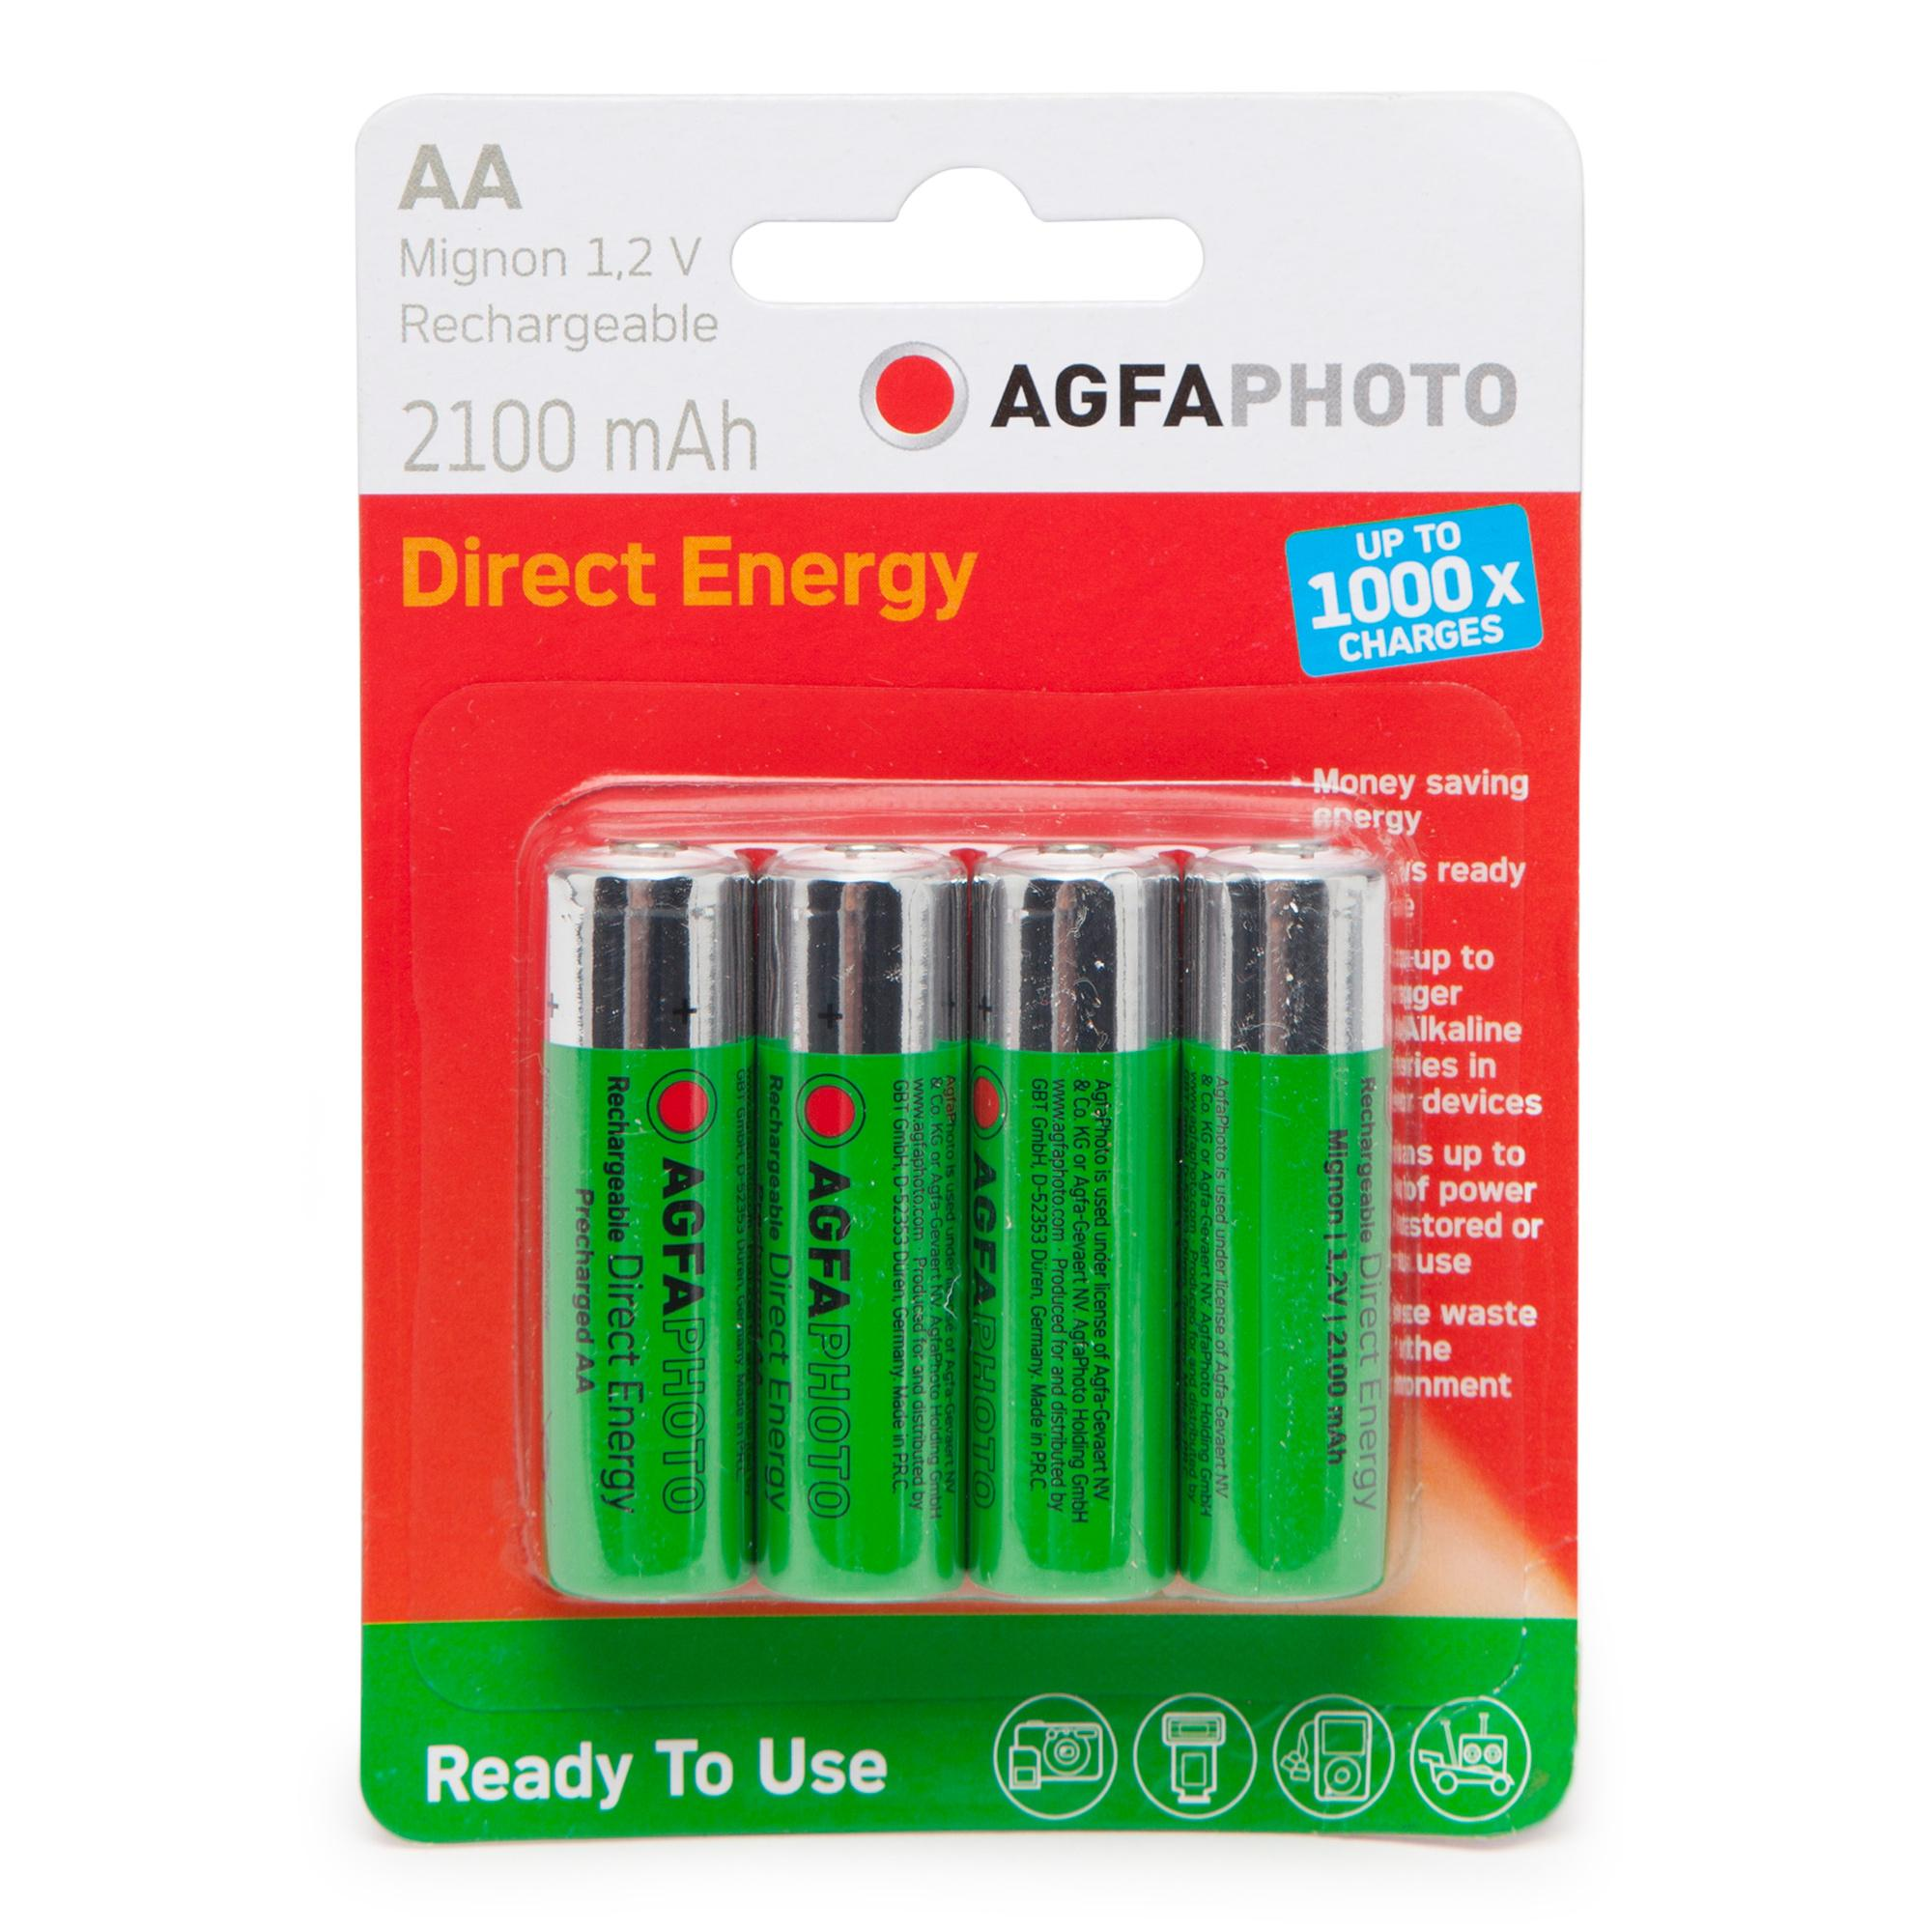 AGFA Rechargeable AA 1.2V Batteries 4 Pack, Multi Coloured